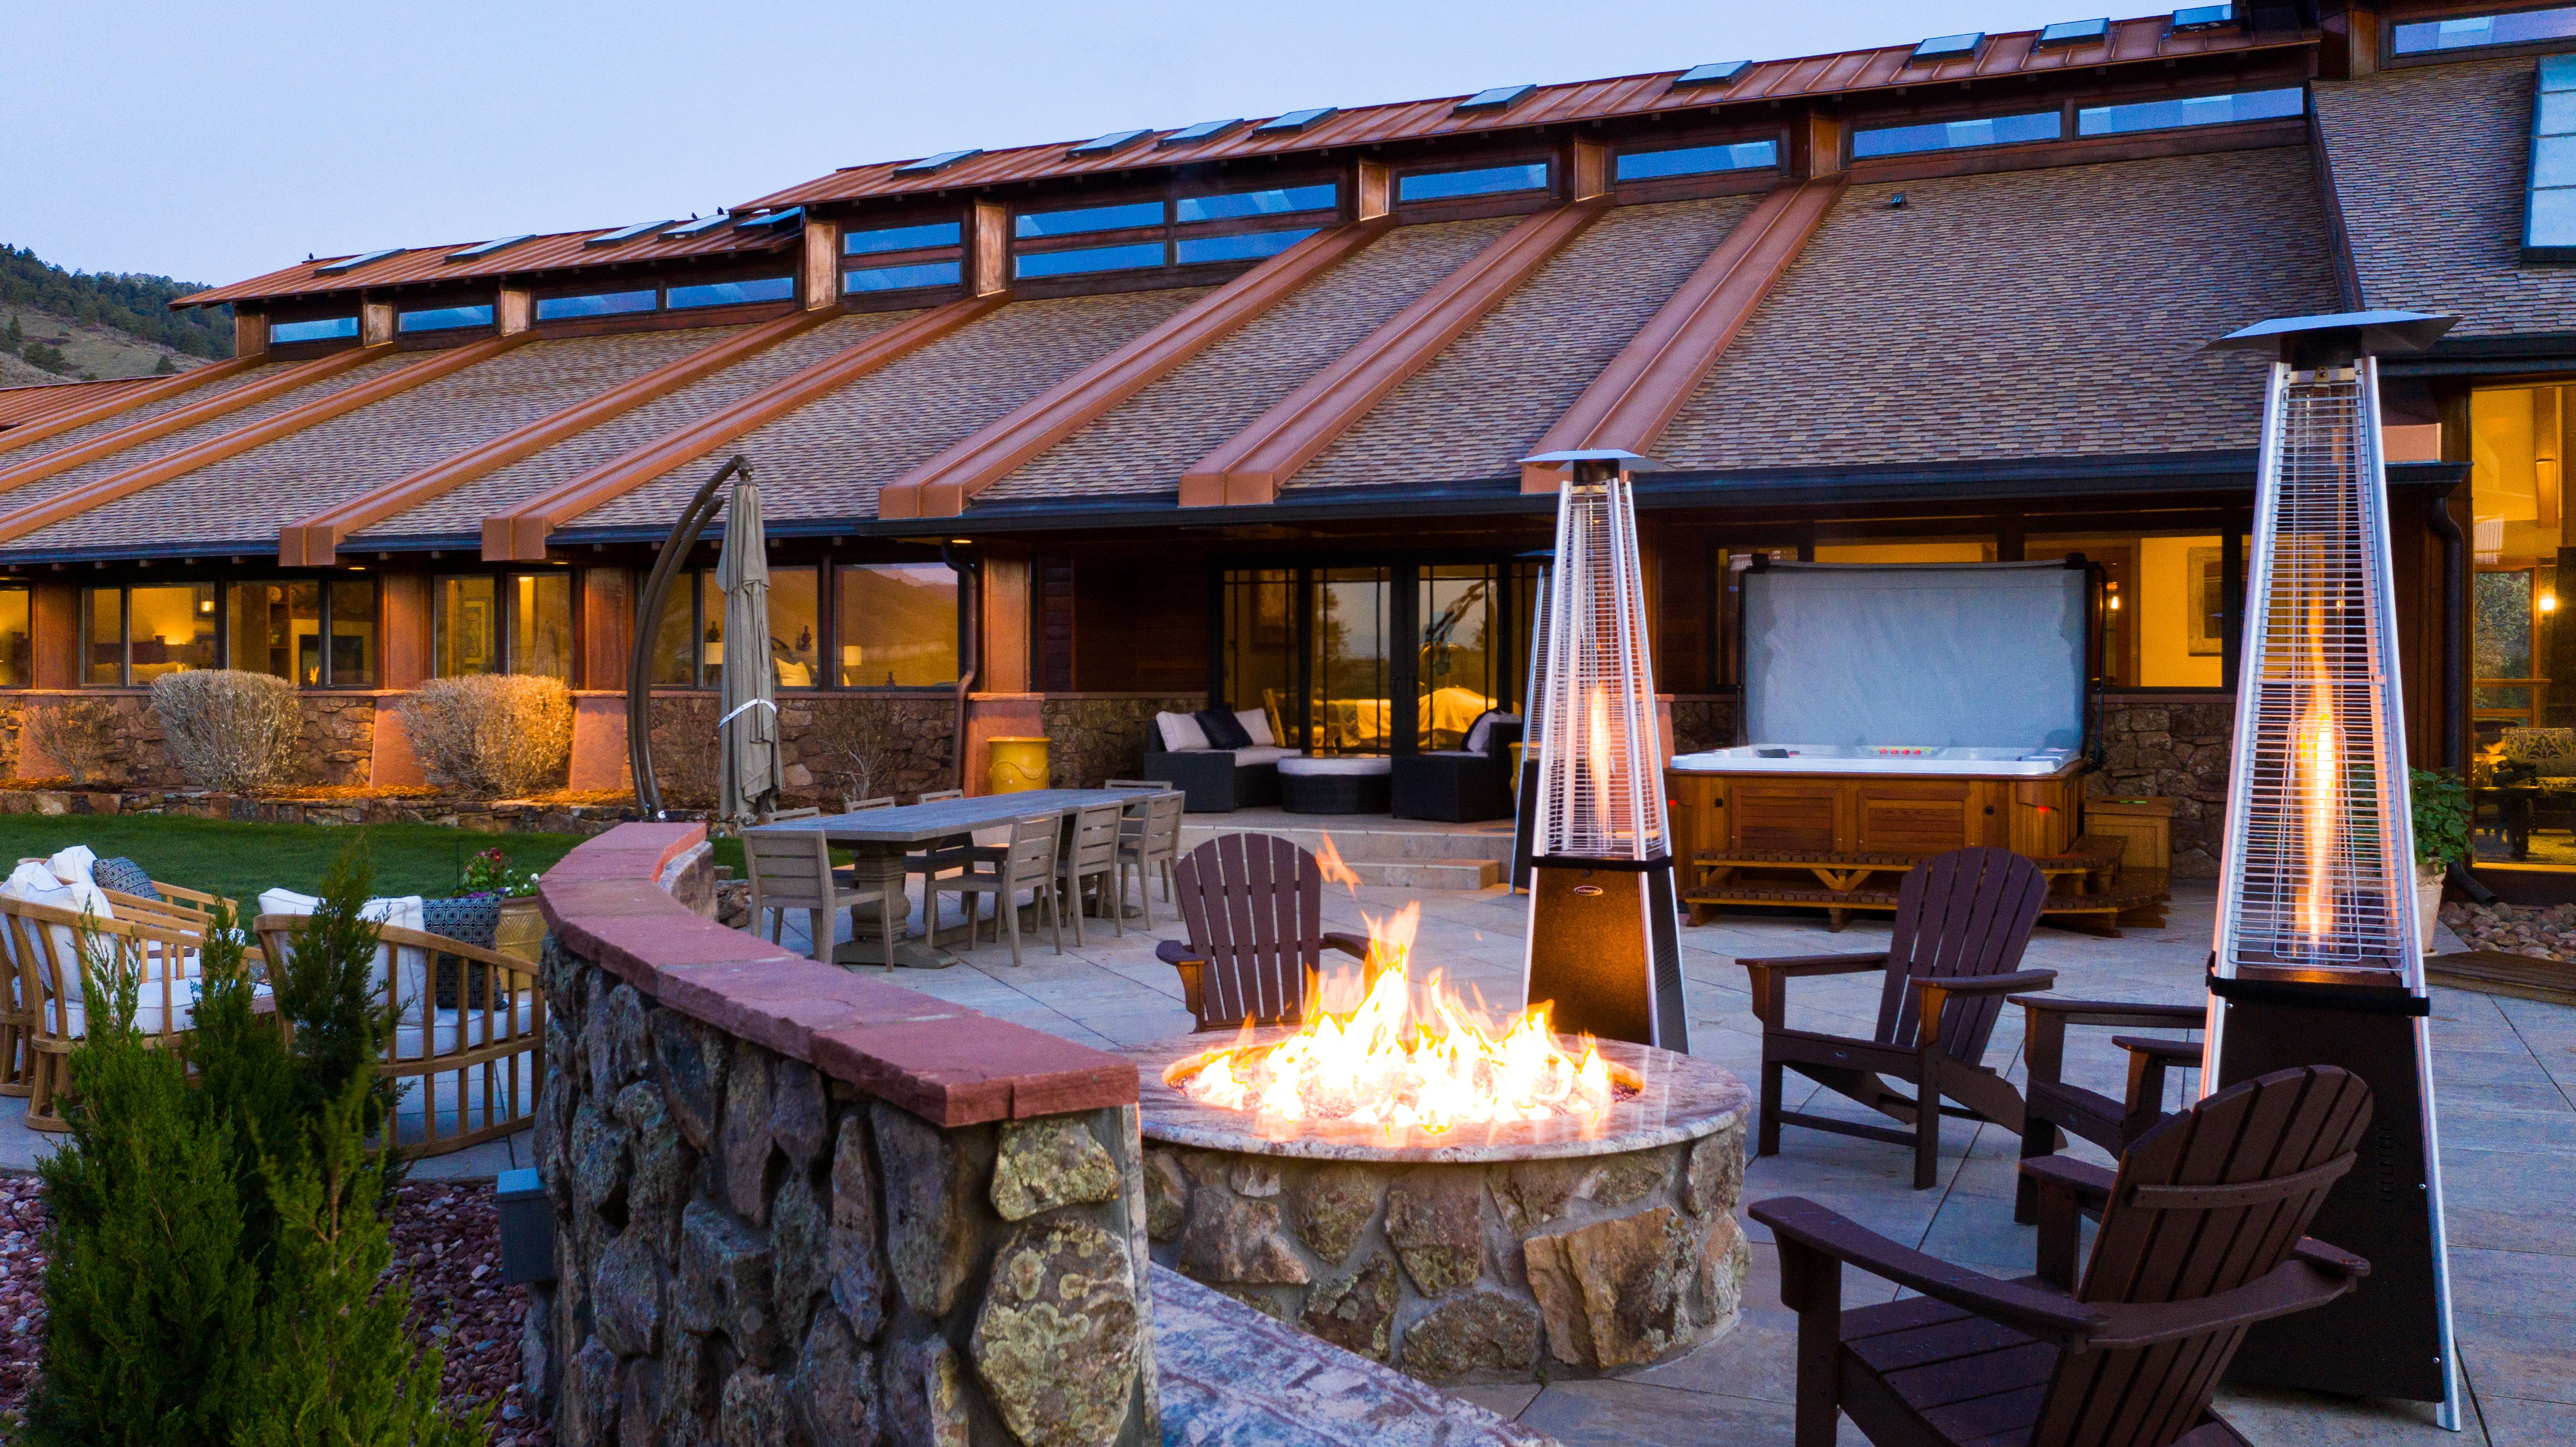 Colorado Mountain house on 35 acres asks $7M fire pit and hot tub